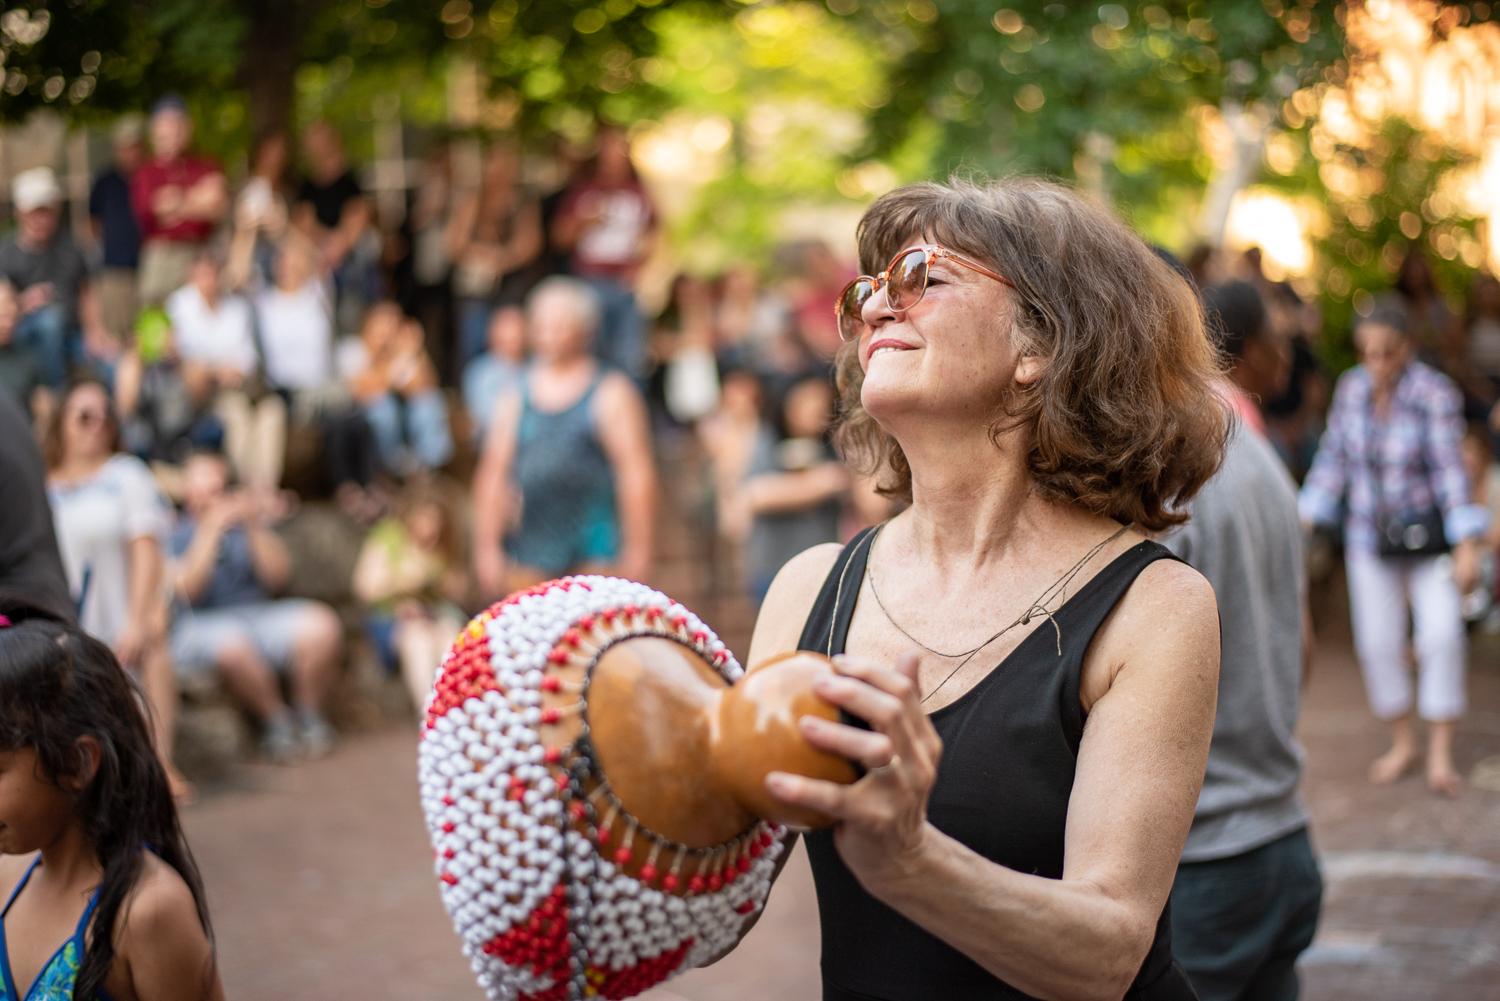 13-Krista-Rossow-Asheville-Downtown-Drum-Circle-woman-dancing